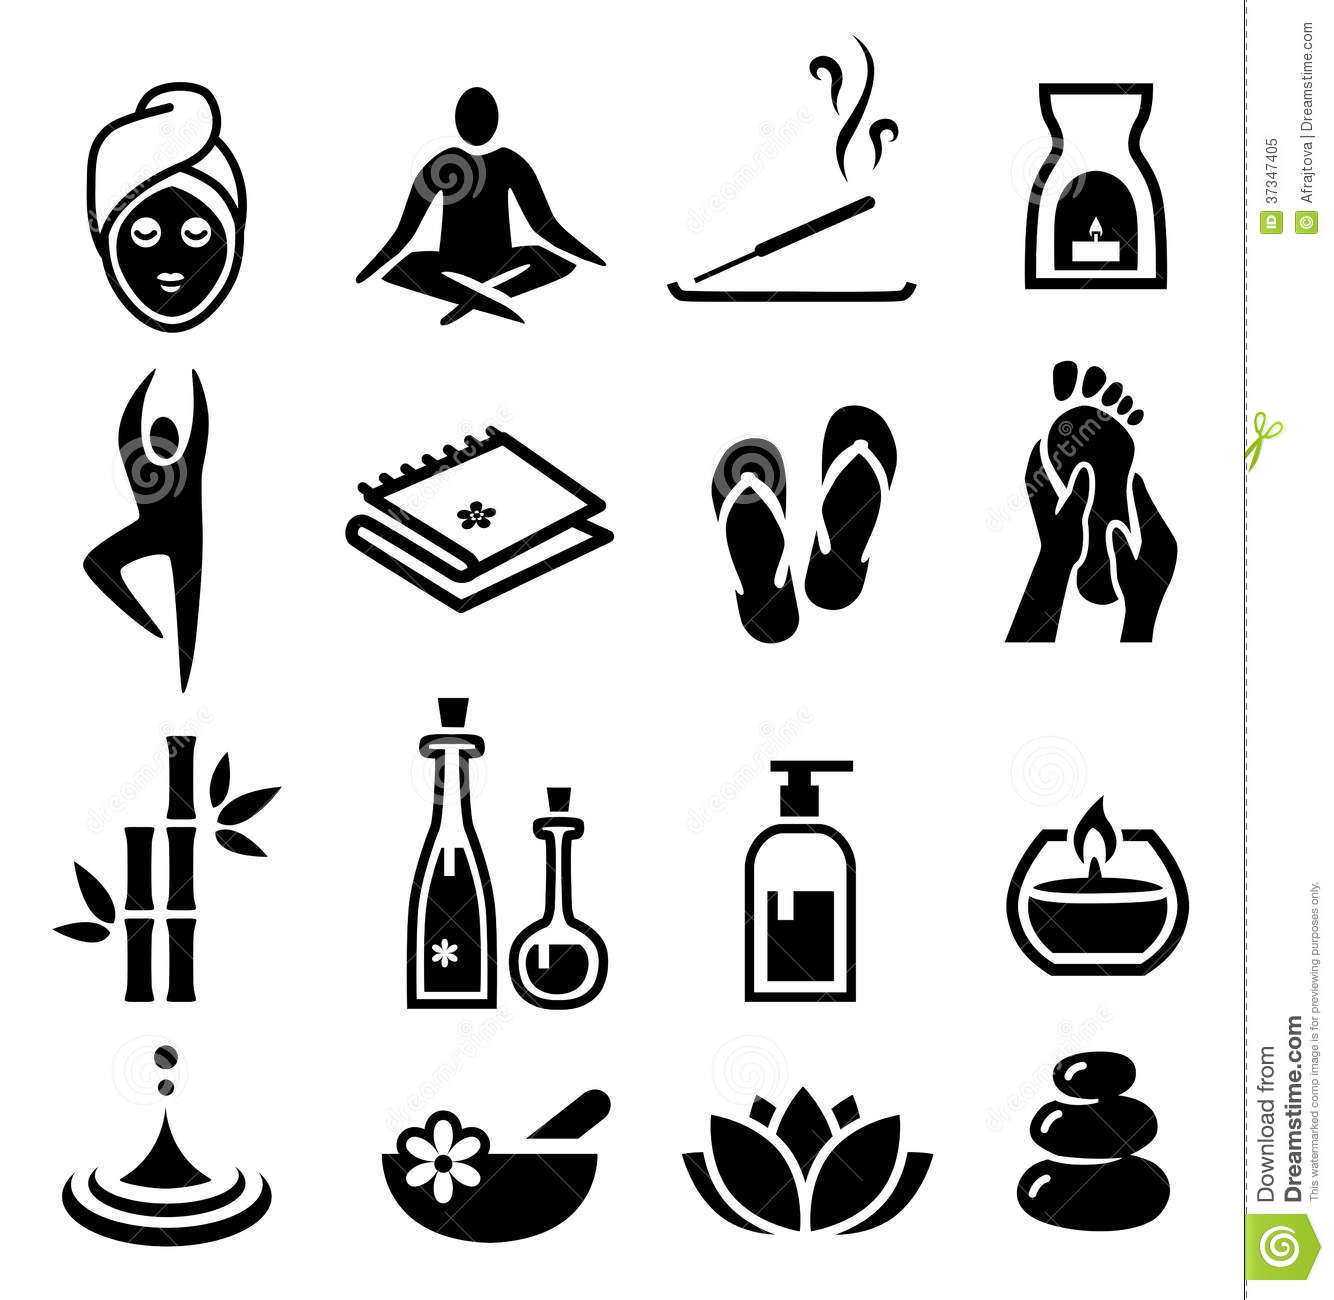 Wellness icon  Wellness and Relax Icons stock vector. Image of beauty - 37347405